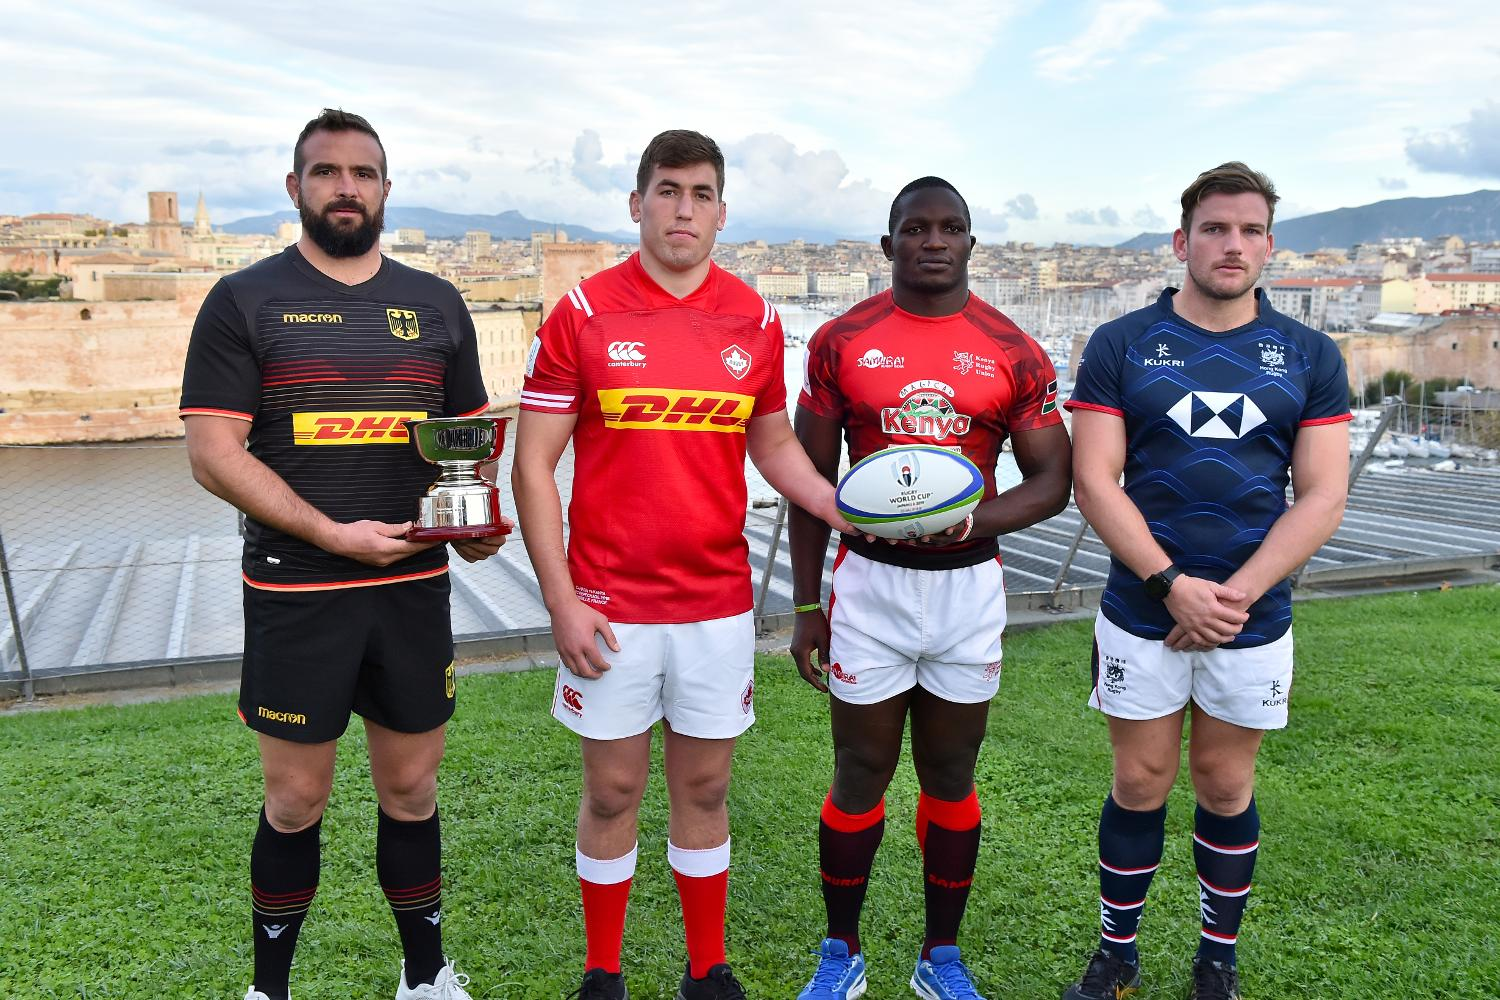 RWC 2019 Repechage captains' photo